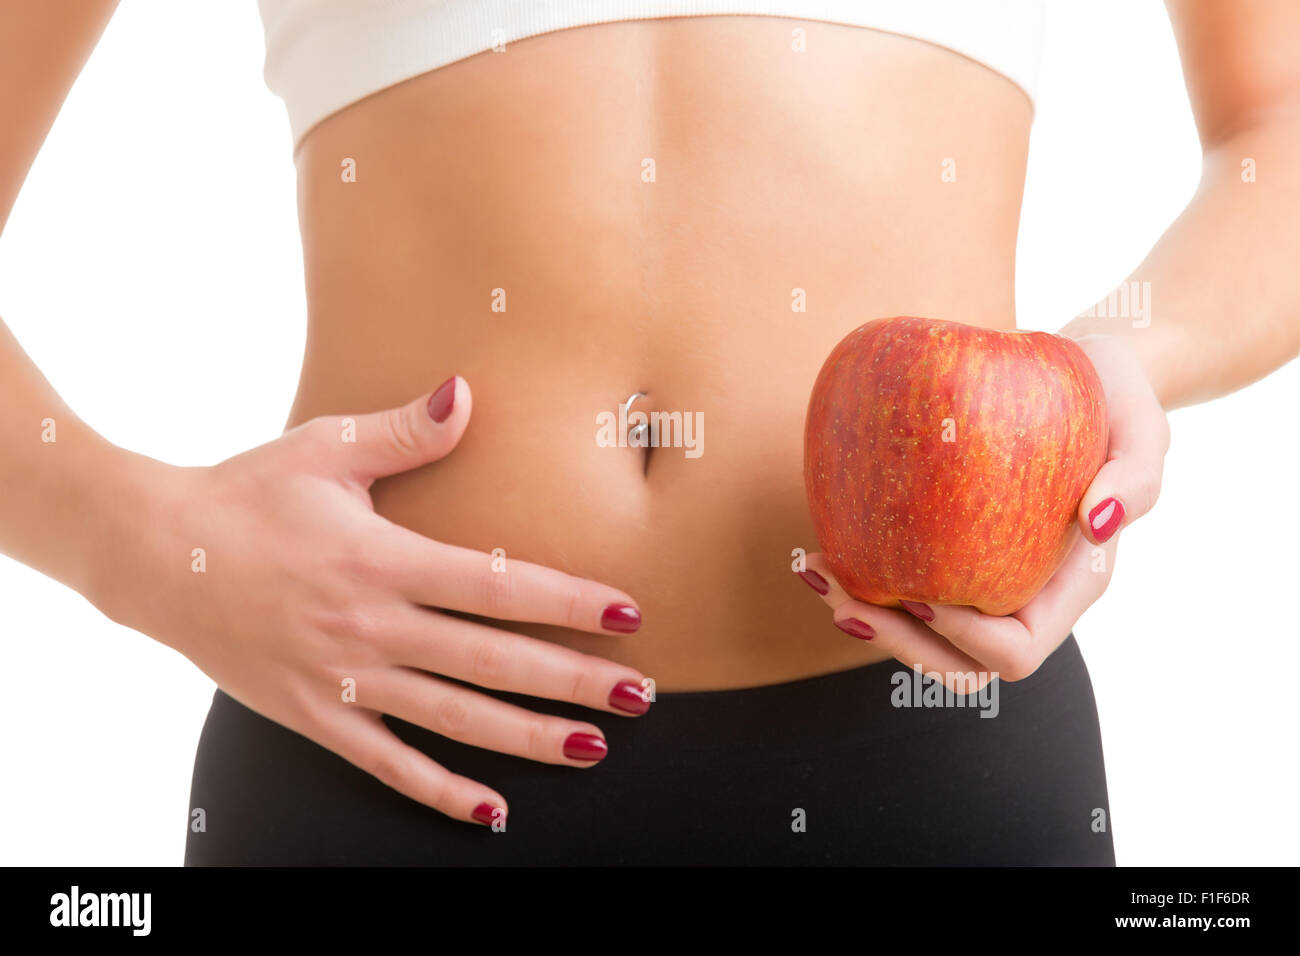 Woman holding an apple with a hand on her abdomen. Focus on the apple. - Stock Image